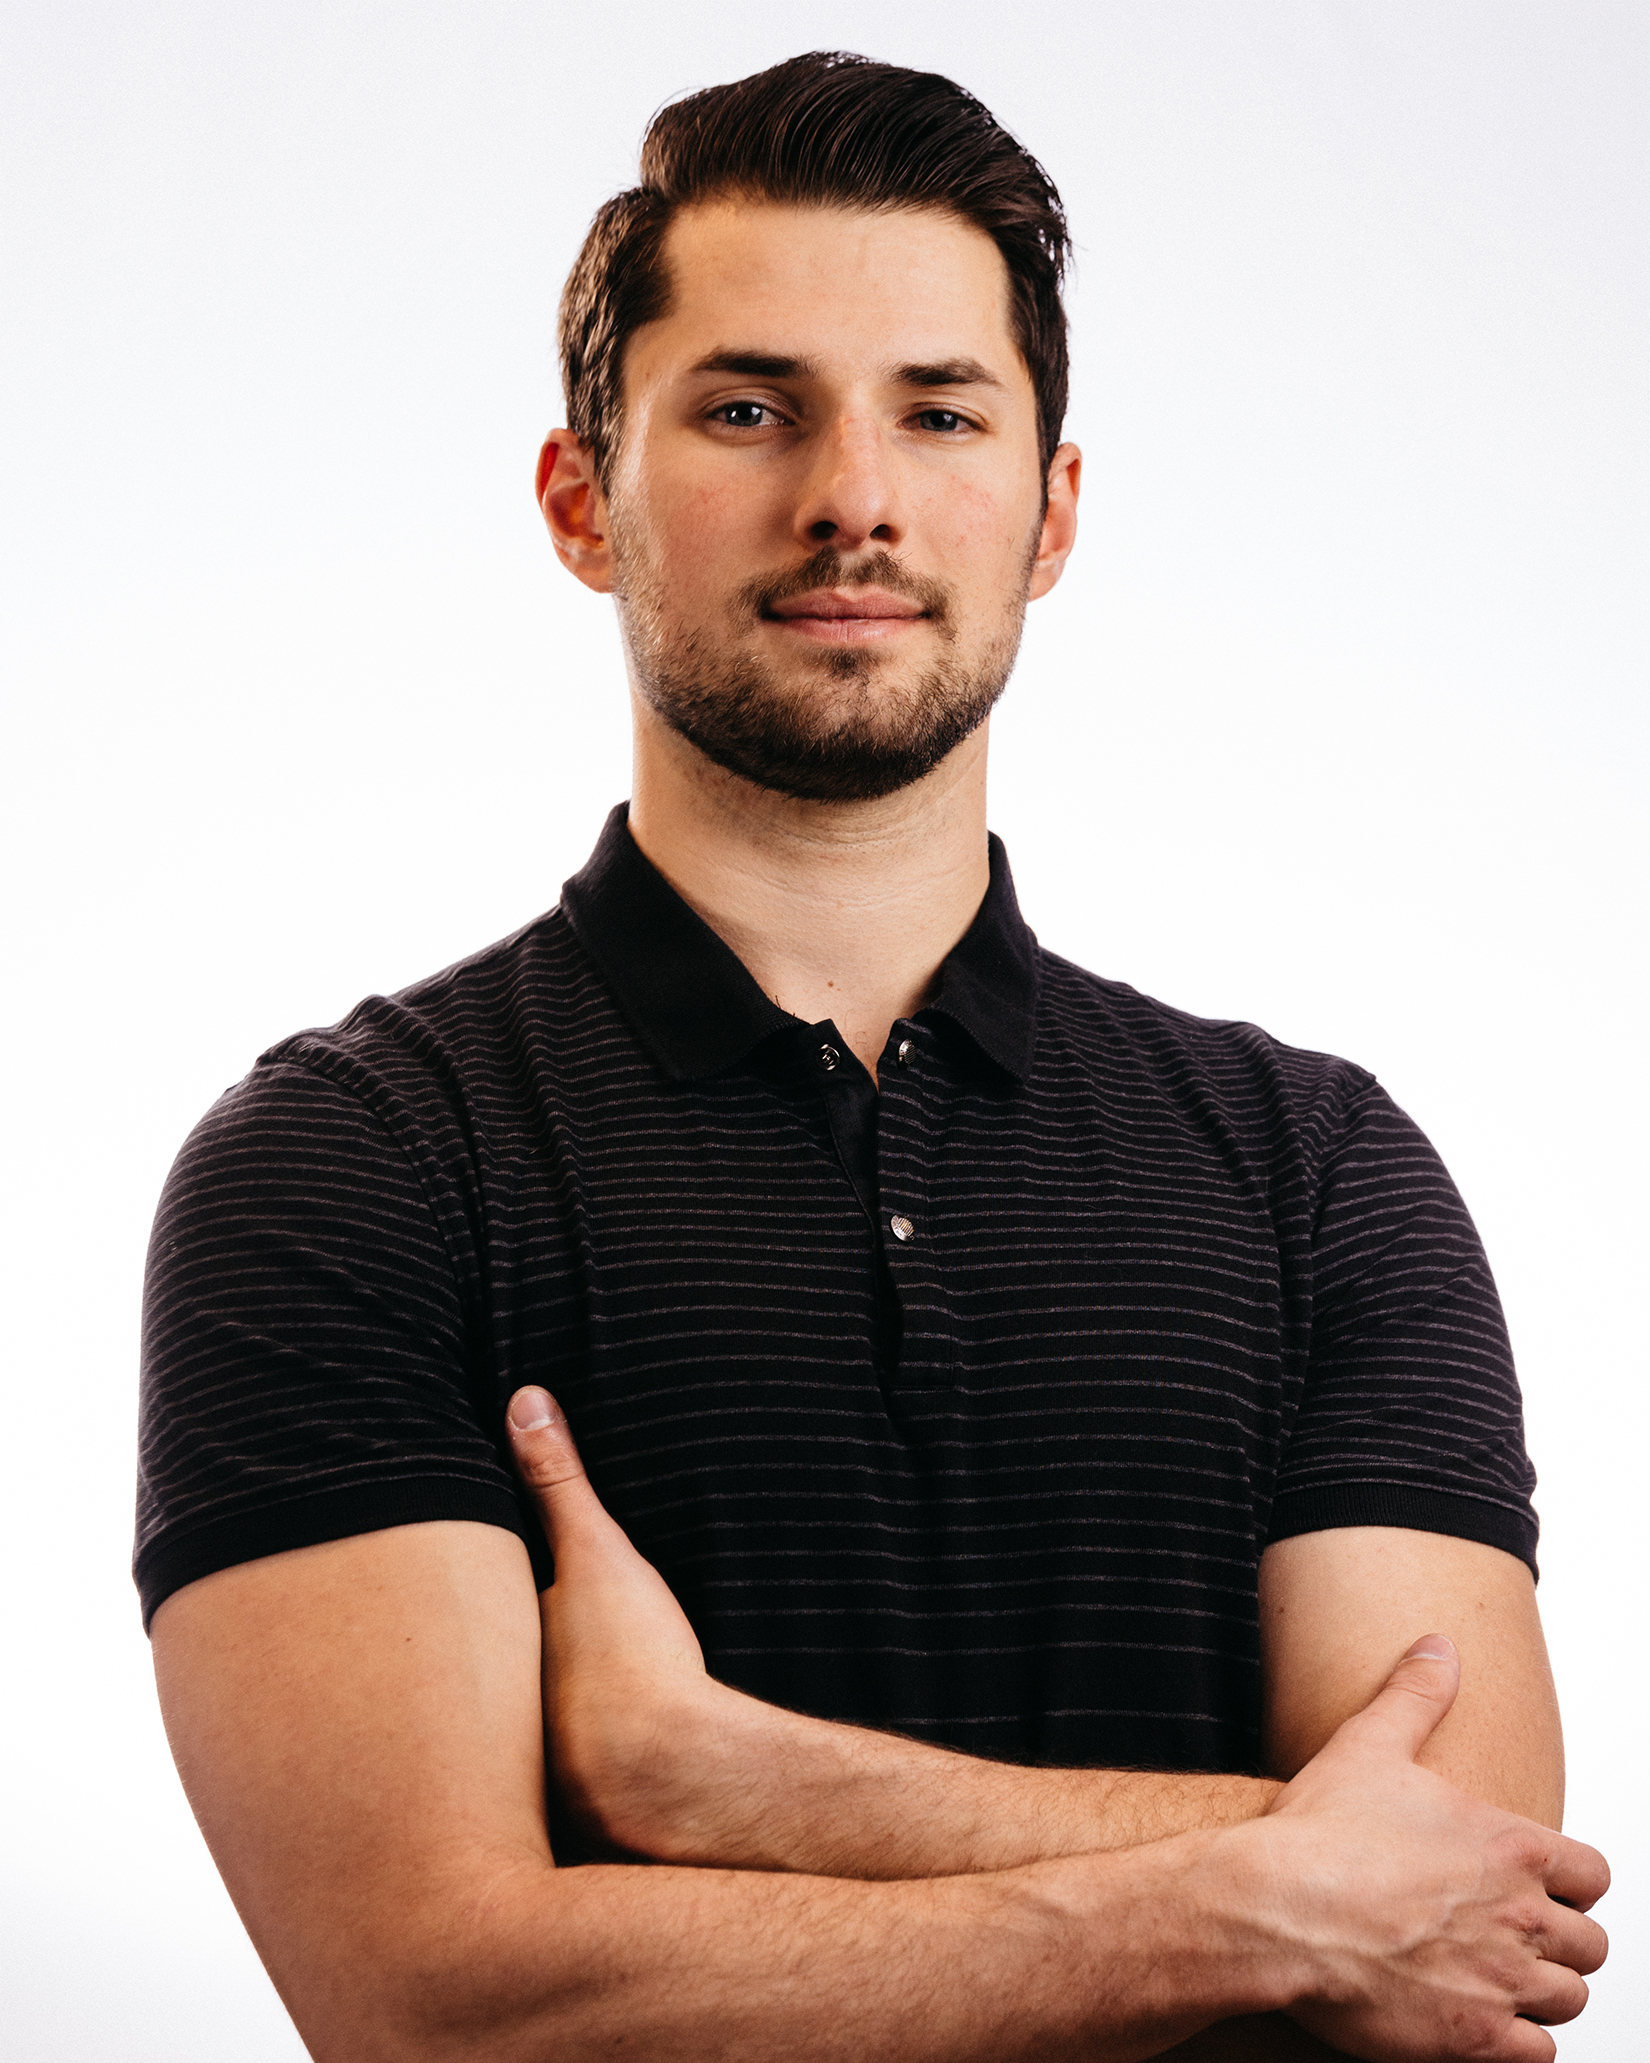 Dmitri Heller - Dmitri specializes in a broad range of techniques including Deep Tissue, Trigger Point, Neuromuscular, Myofascial, Swedish, and Sports Massage.Click here to learn more about Dmitri